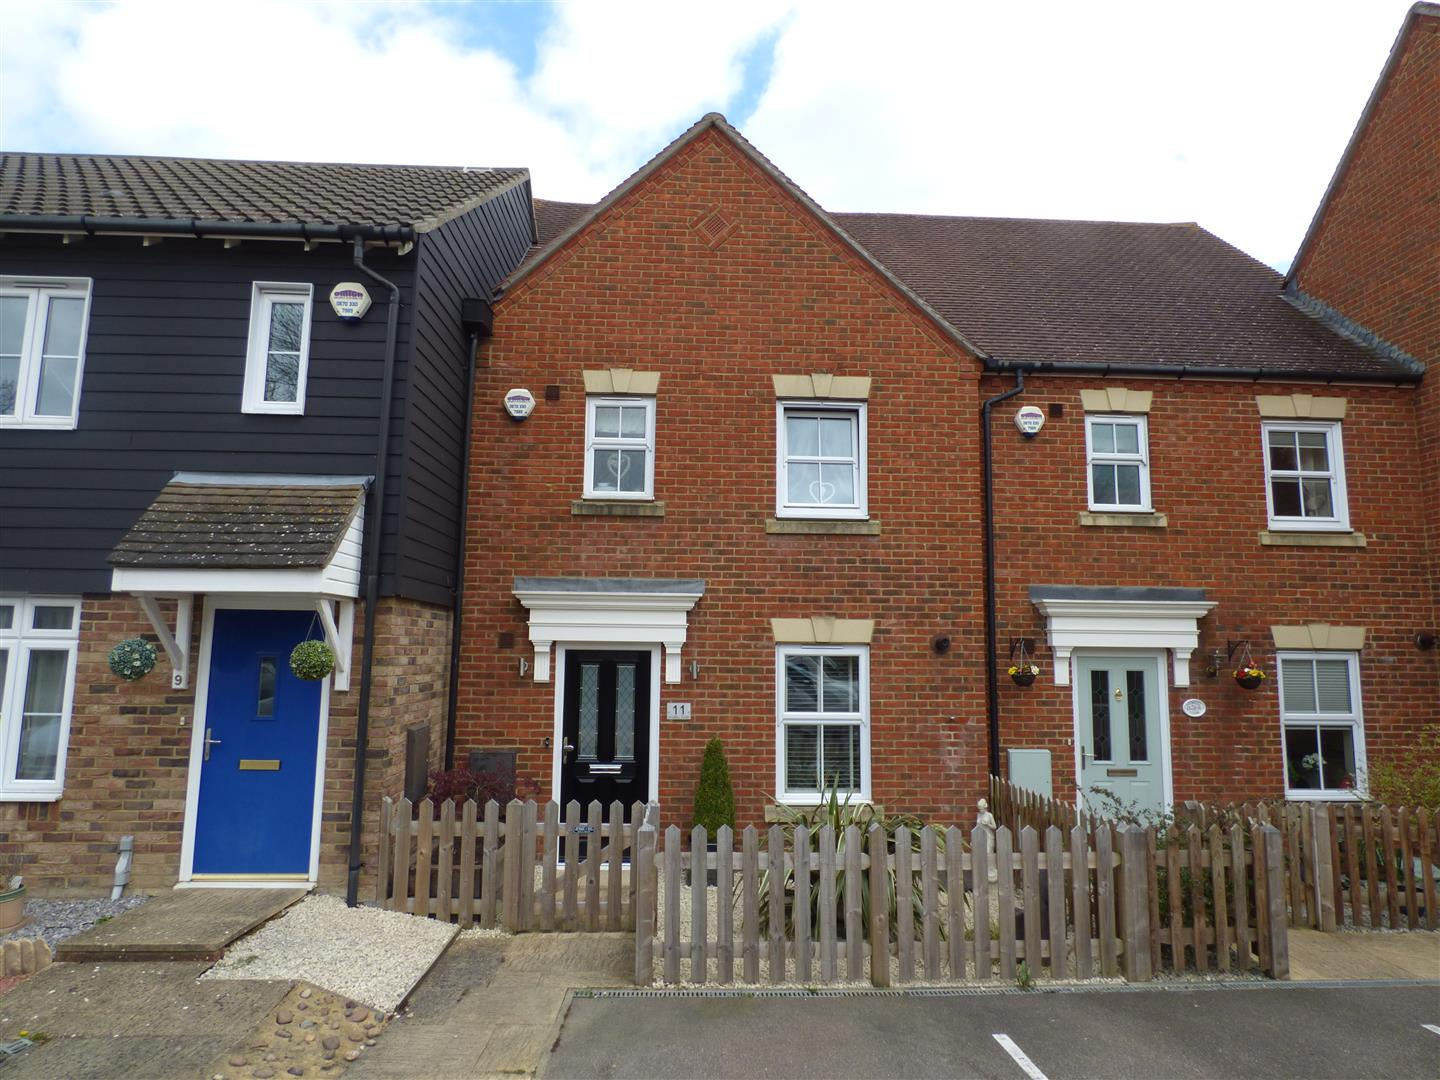 3 Bedrooms Terraced House for rent in Stowell Close, Singleton, Ashford